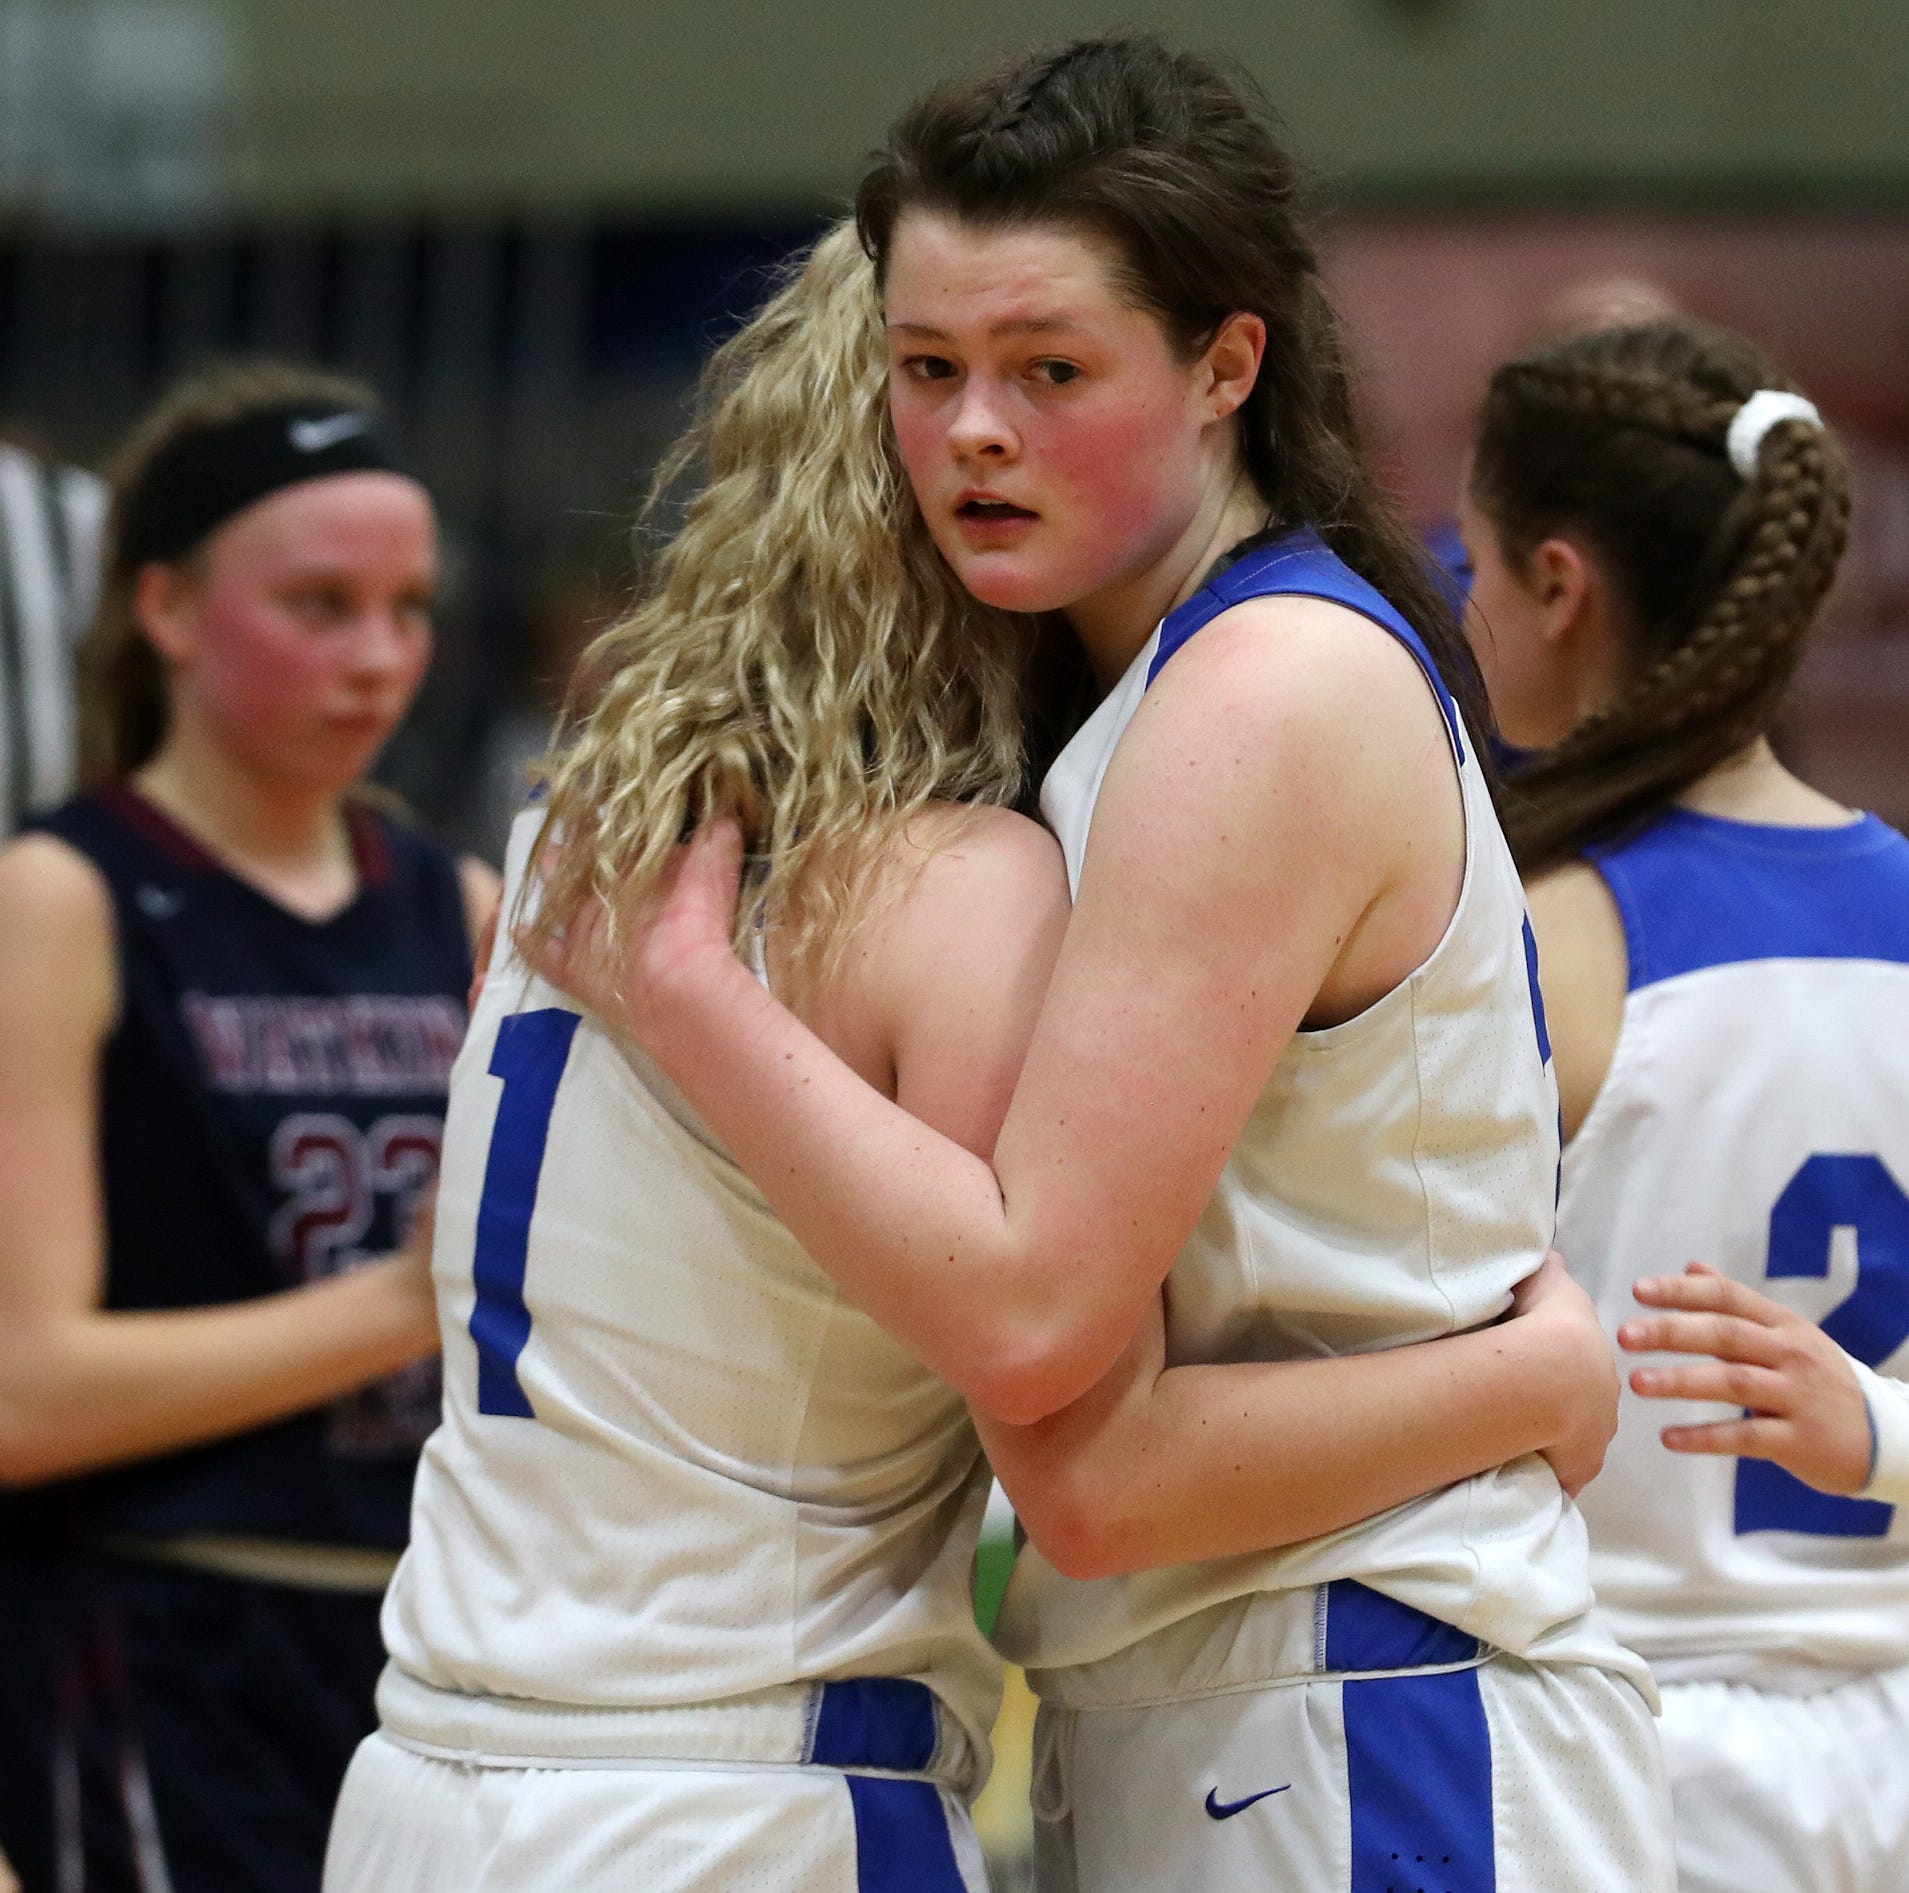 Millbrook girls basketball's title defense ends with loss in state final four